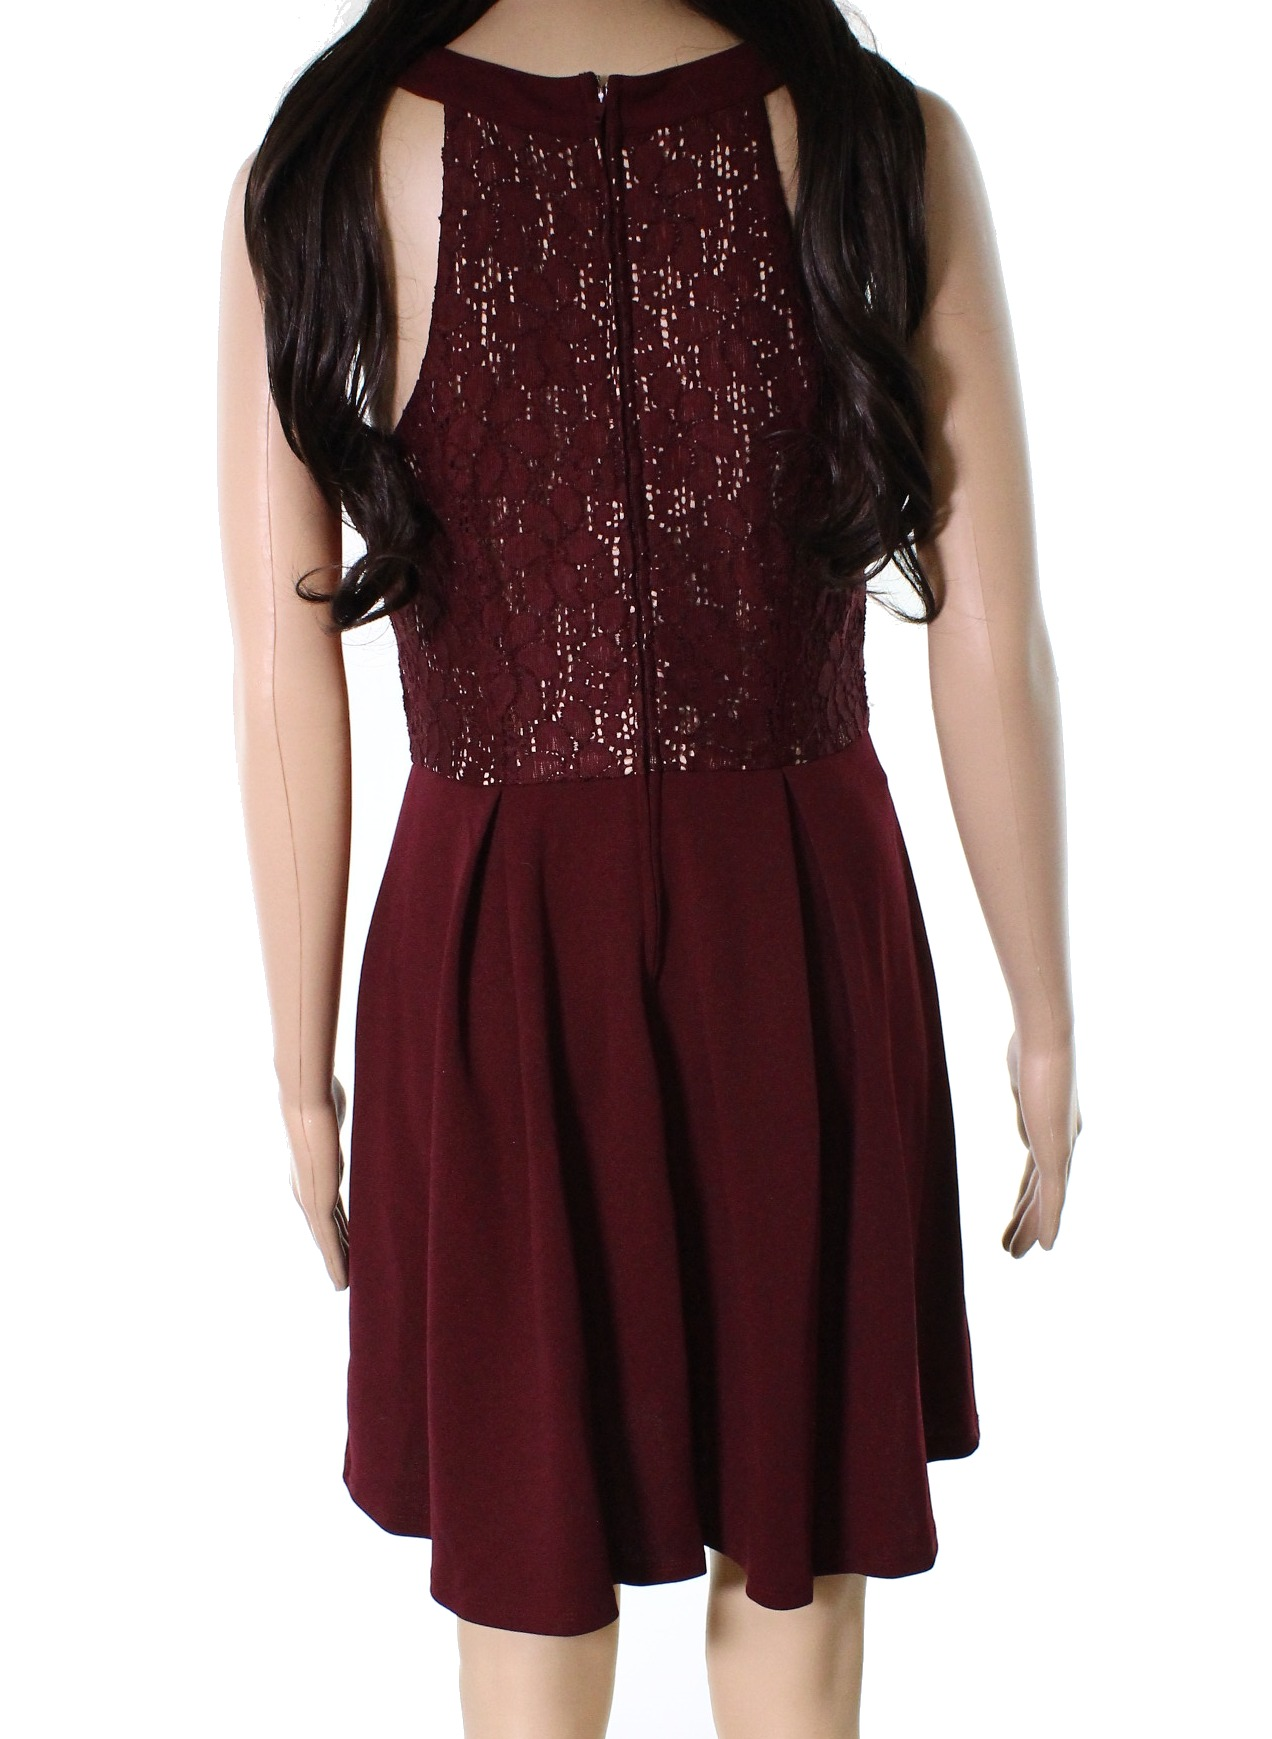 New-Speechless-NEW-Red-Junior-Size-Large-L-A-Line-Pleated-Lace-Dress-52-293 thumbnail 2